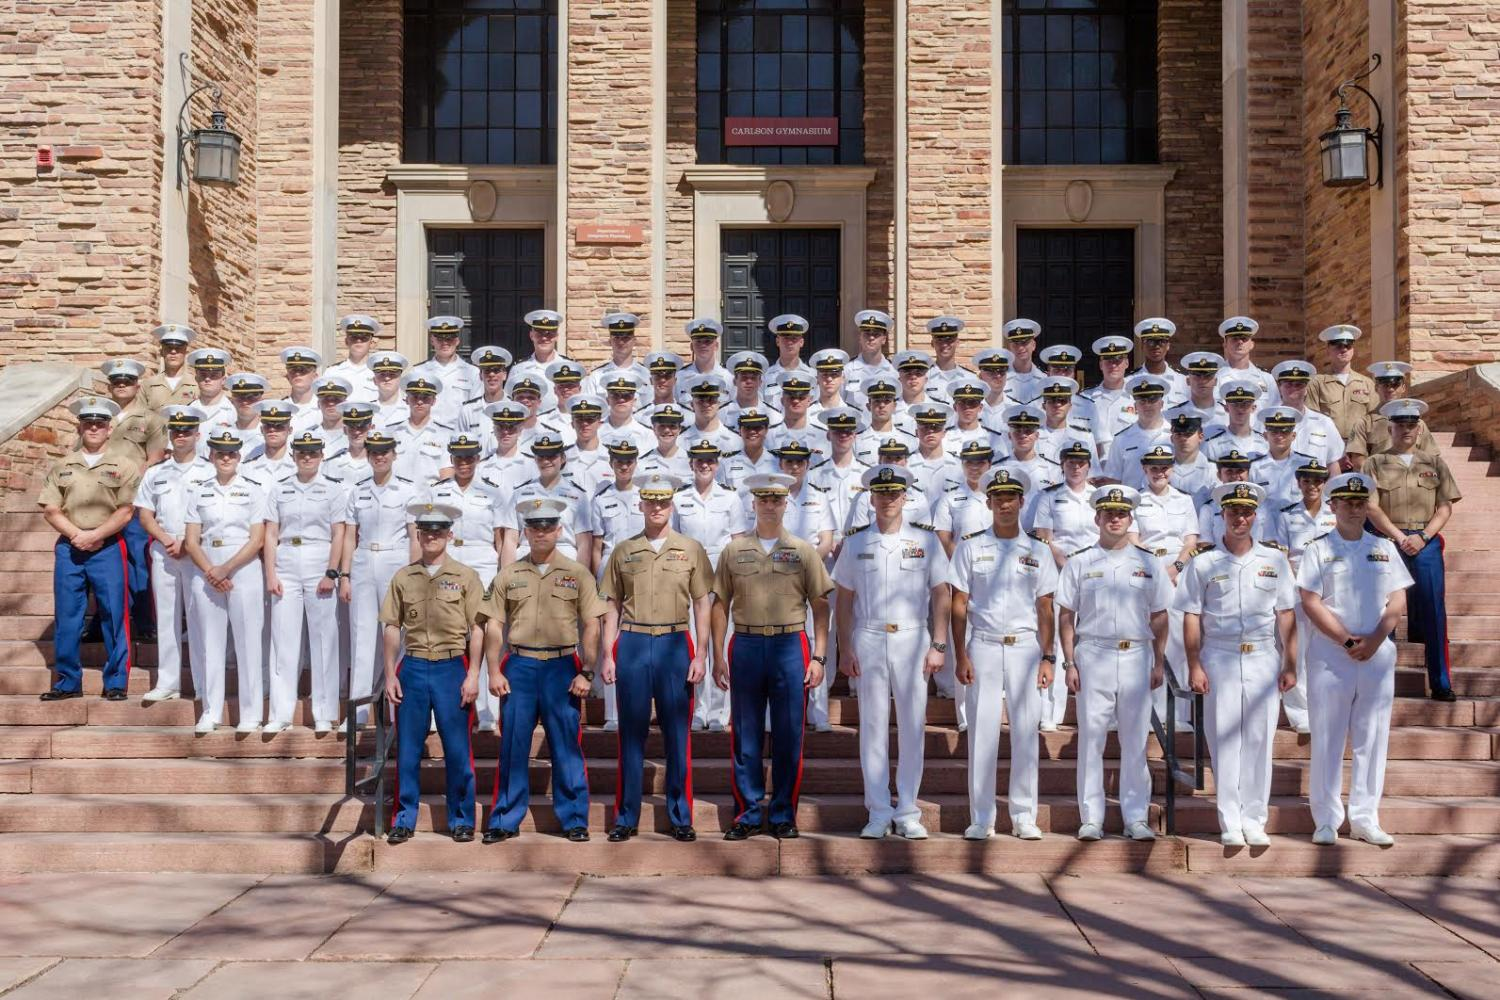 cu boulder essay home naval reserve officers training corps  home naval reserve officers training corps university of battalion photo 2016